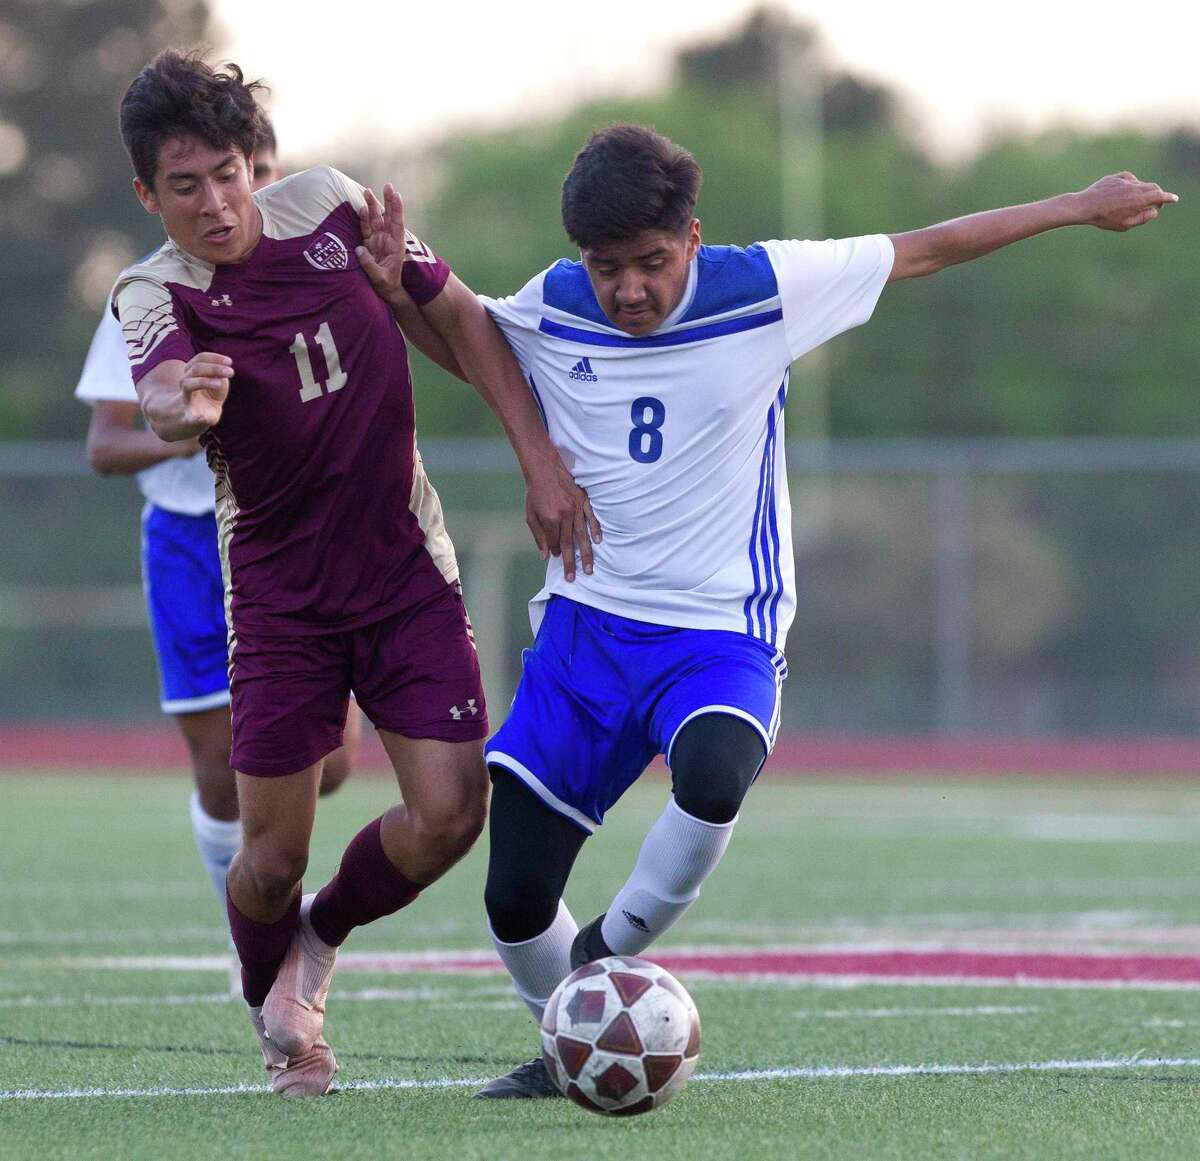 Magnolia West midfielder Carlos Larios (11) battles Ricardo Ramirez #8 of New Caney for the ball during the first period of a Region III-5A bi-district soccer match at Magnolia West High School, Friday, March 29, 2019, in Magnolia.